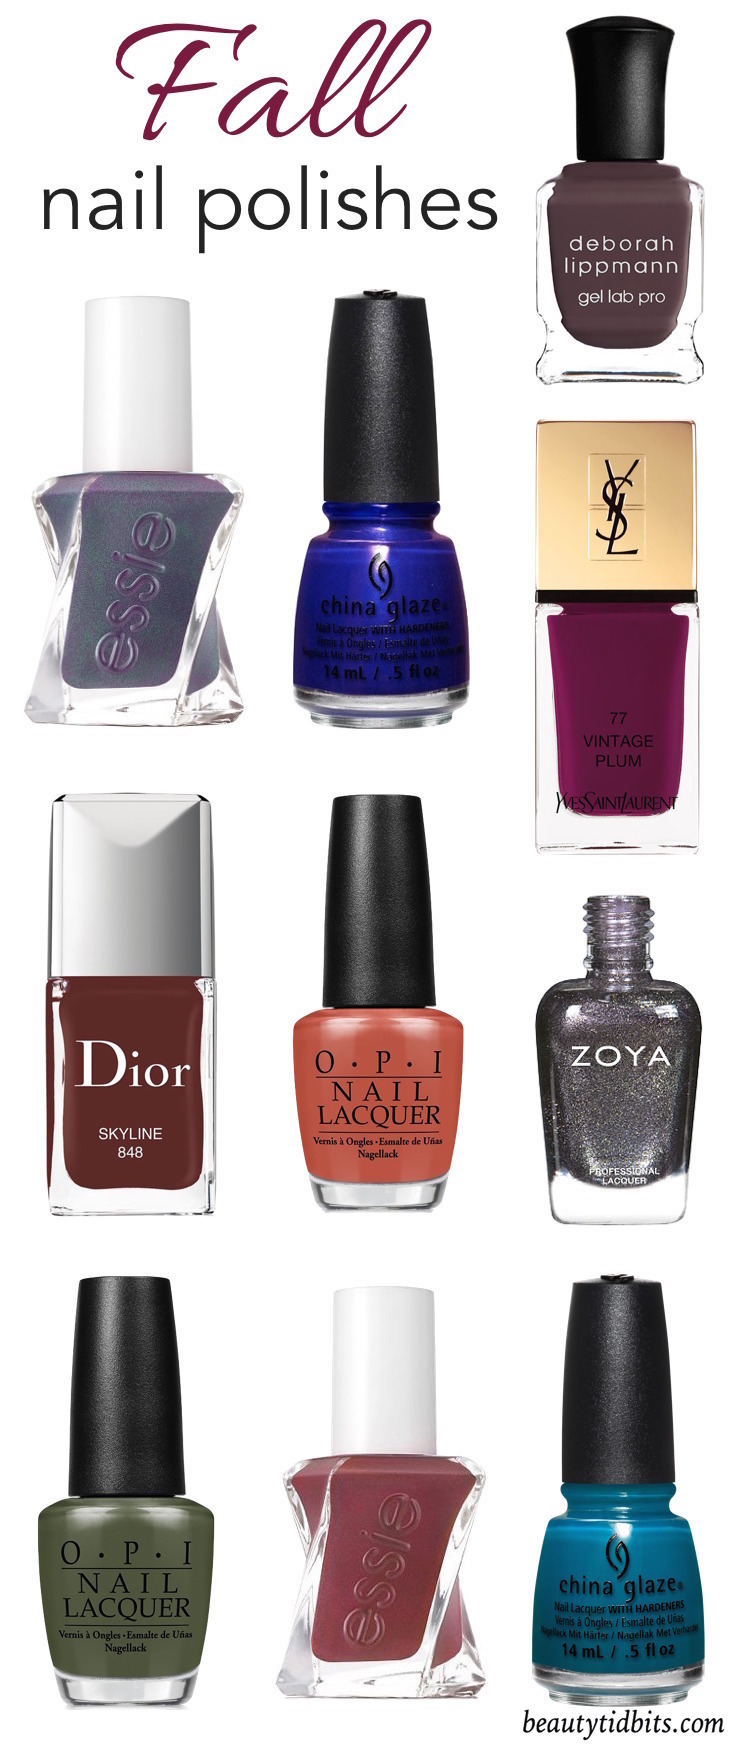 From the perfect plums to moody blues & greys, here are some of the best new fall nail polish colors you're going to want now!